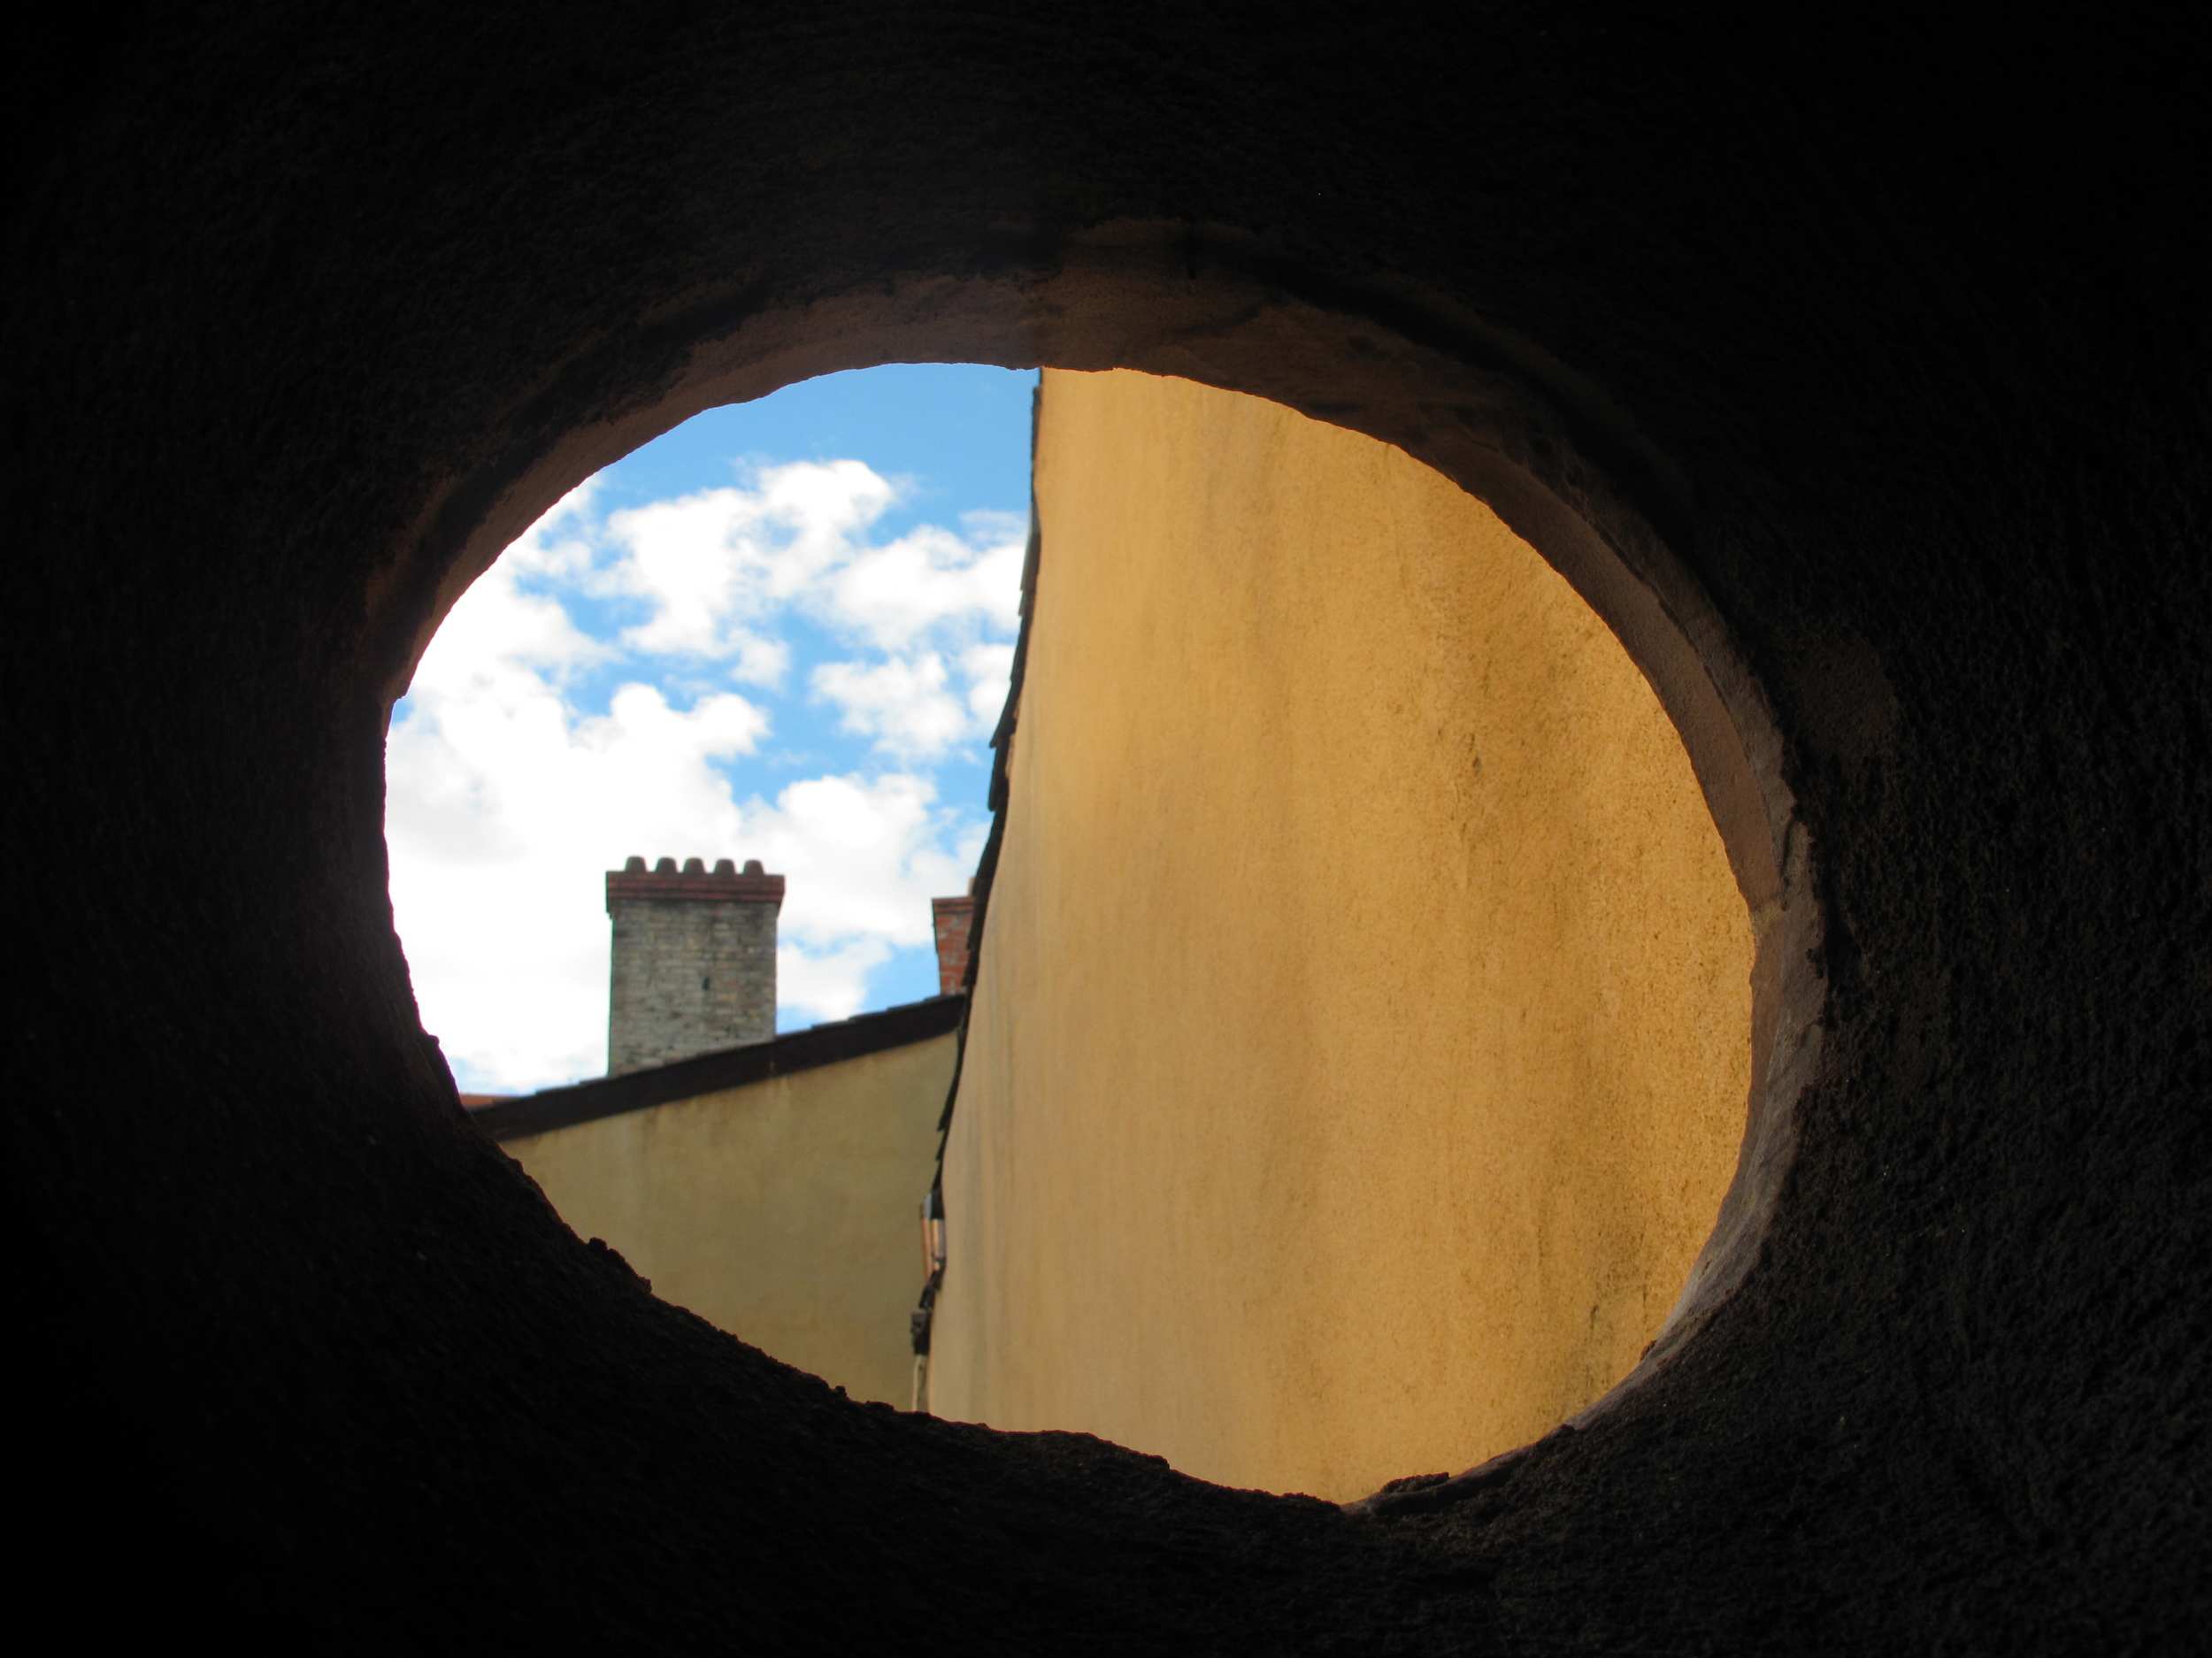 Traboules window onto Lyon, with a view of a chimney